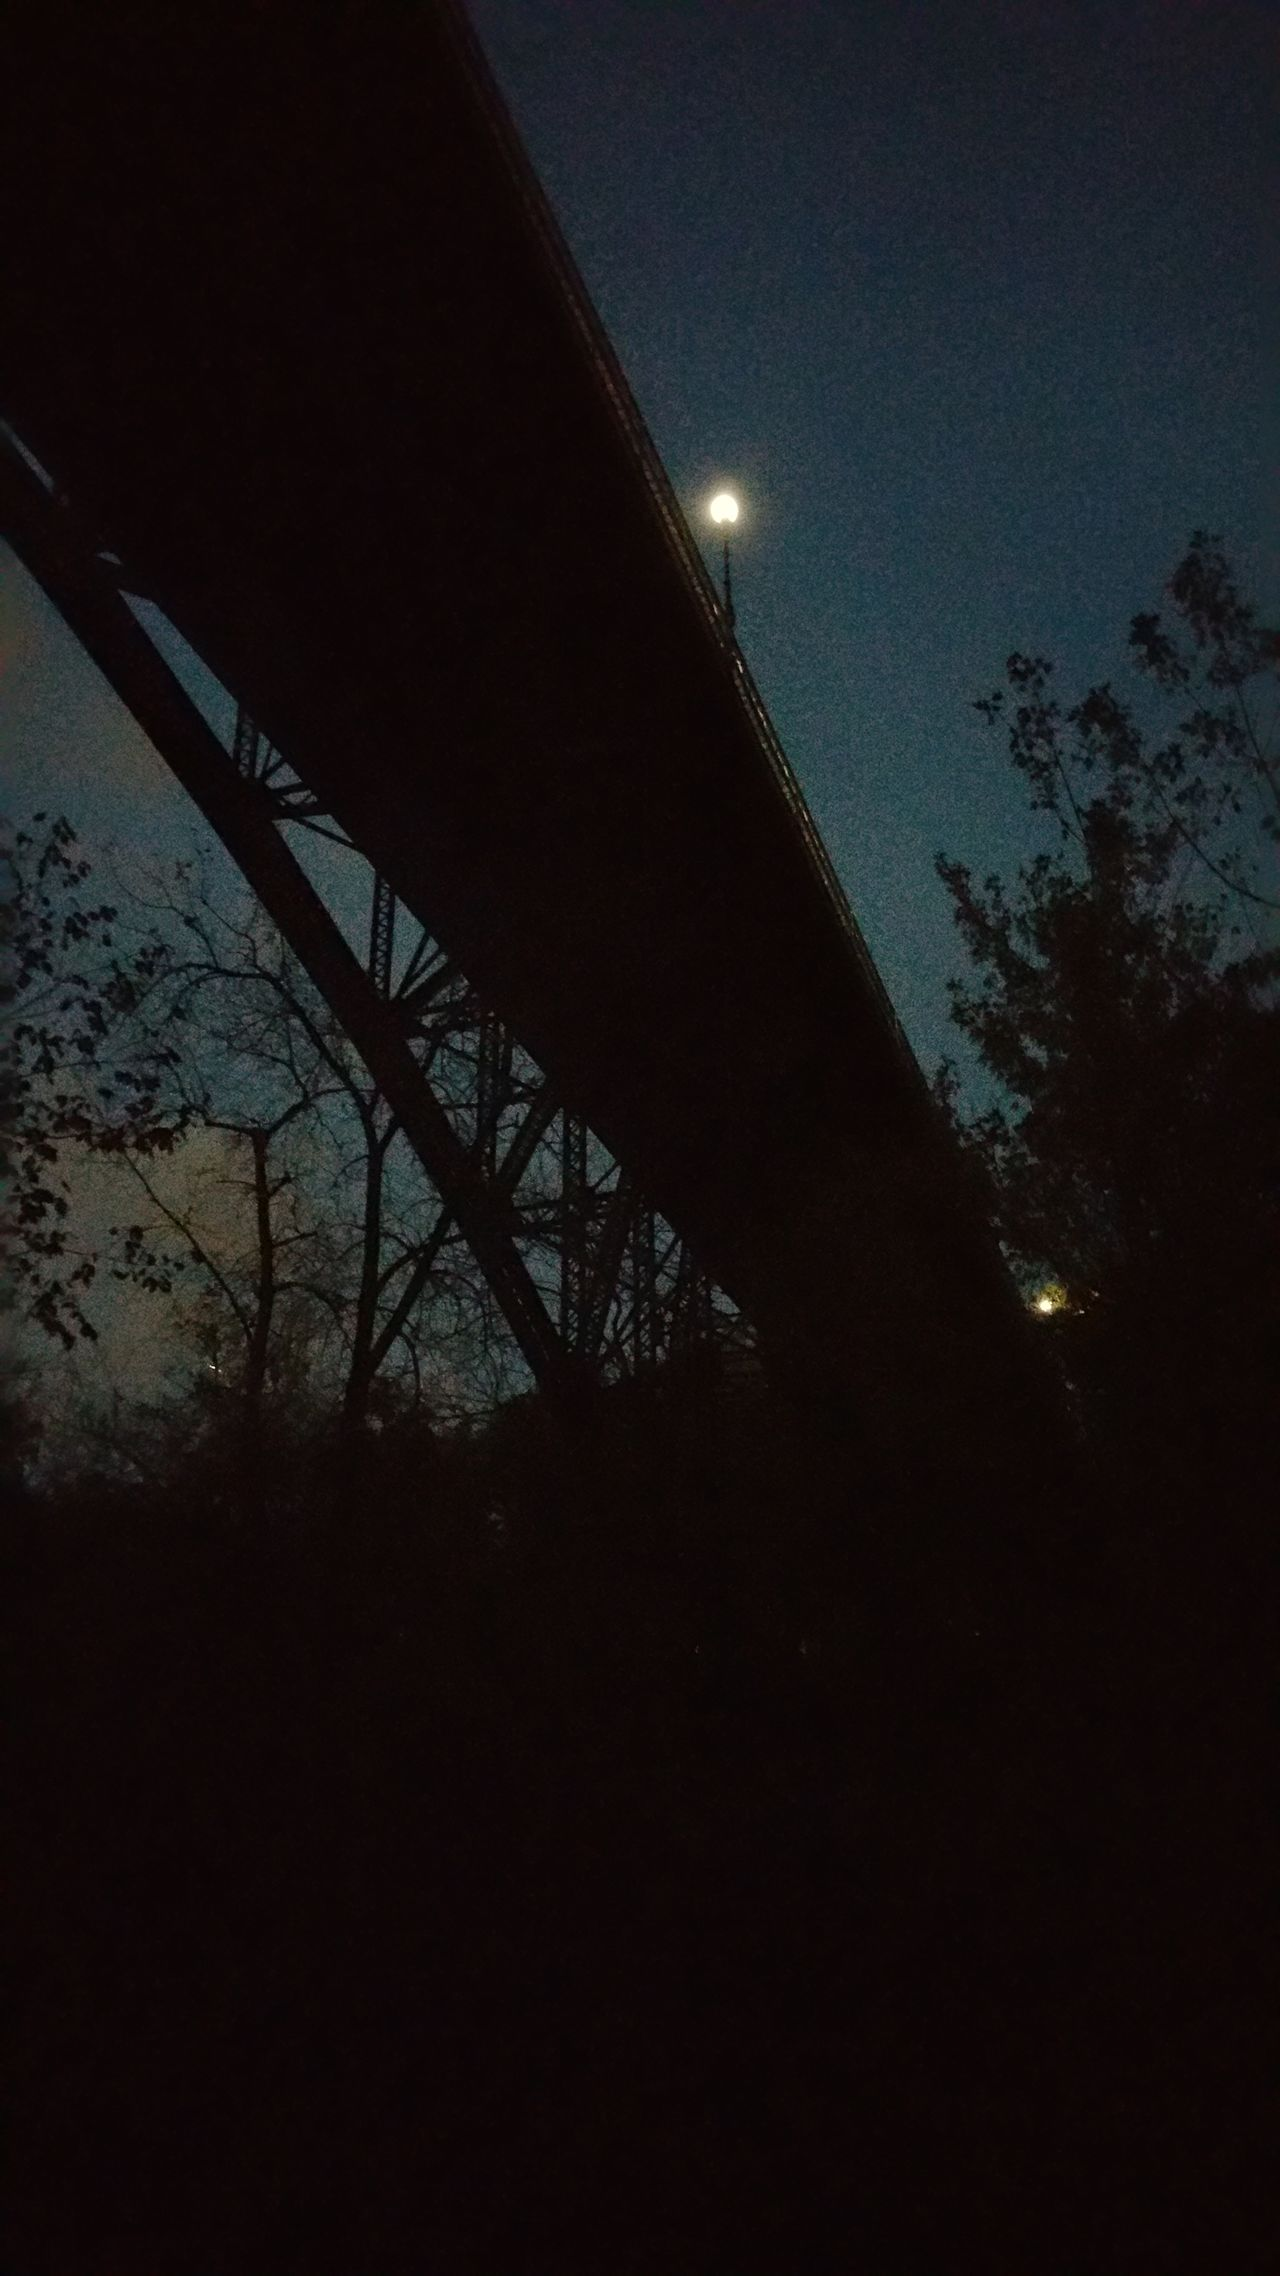 Minnehaha Falls Park Bridge Blue evening dusk sunset Low Angle View Silhouette Architecture Built Structure Tree Night Moon Dusk Dark Sky Bare Tree Building Exterior Growth Plant Bridge - Man Made Structure Outdoors Outline Engineering Below Nature